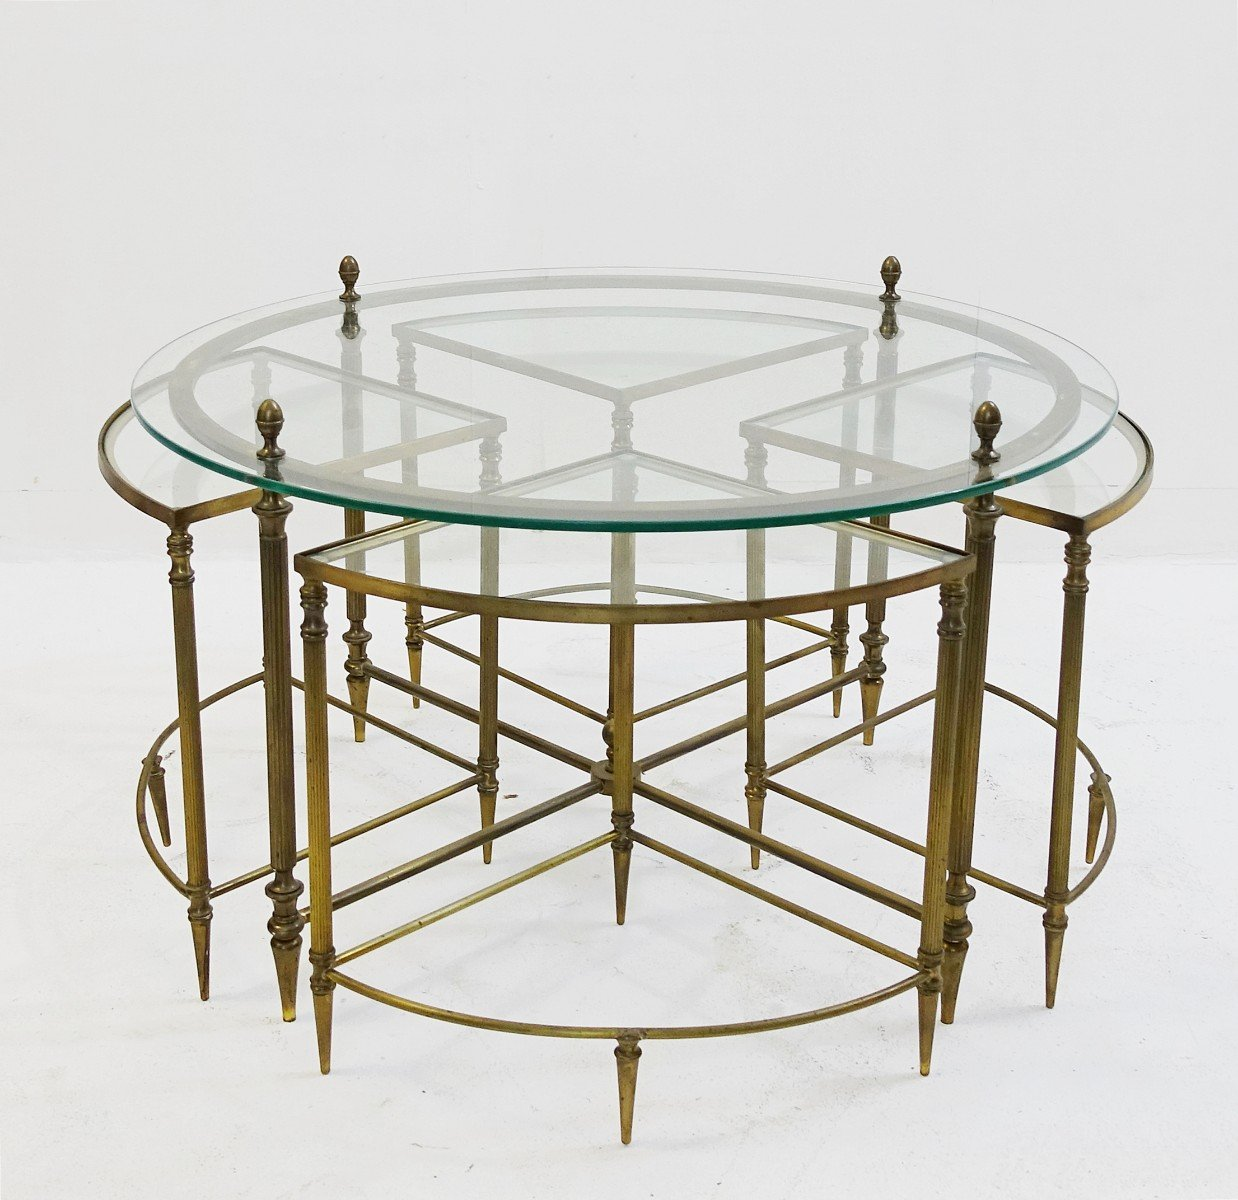 Round vintage brass coffee table with 4 nesting tables